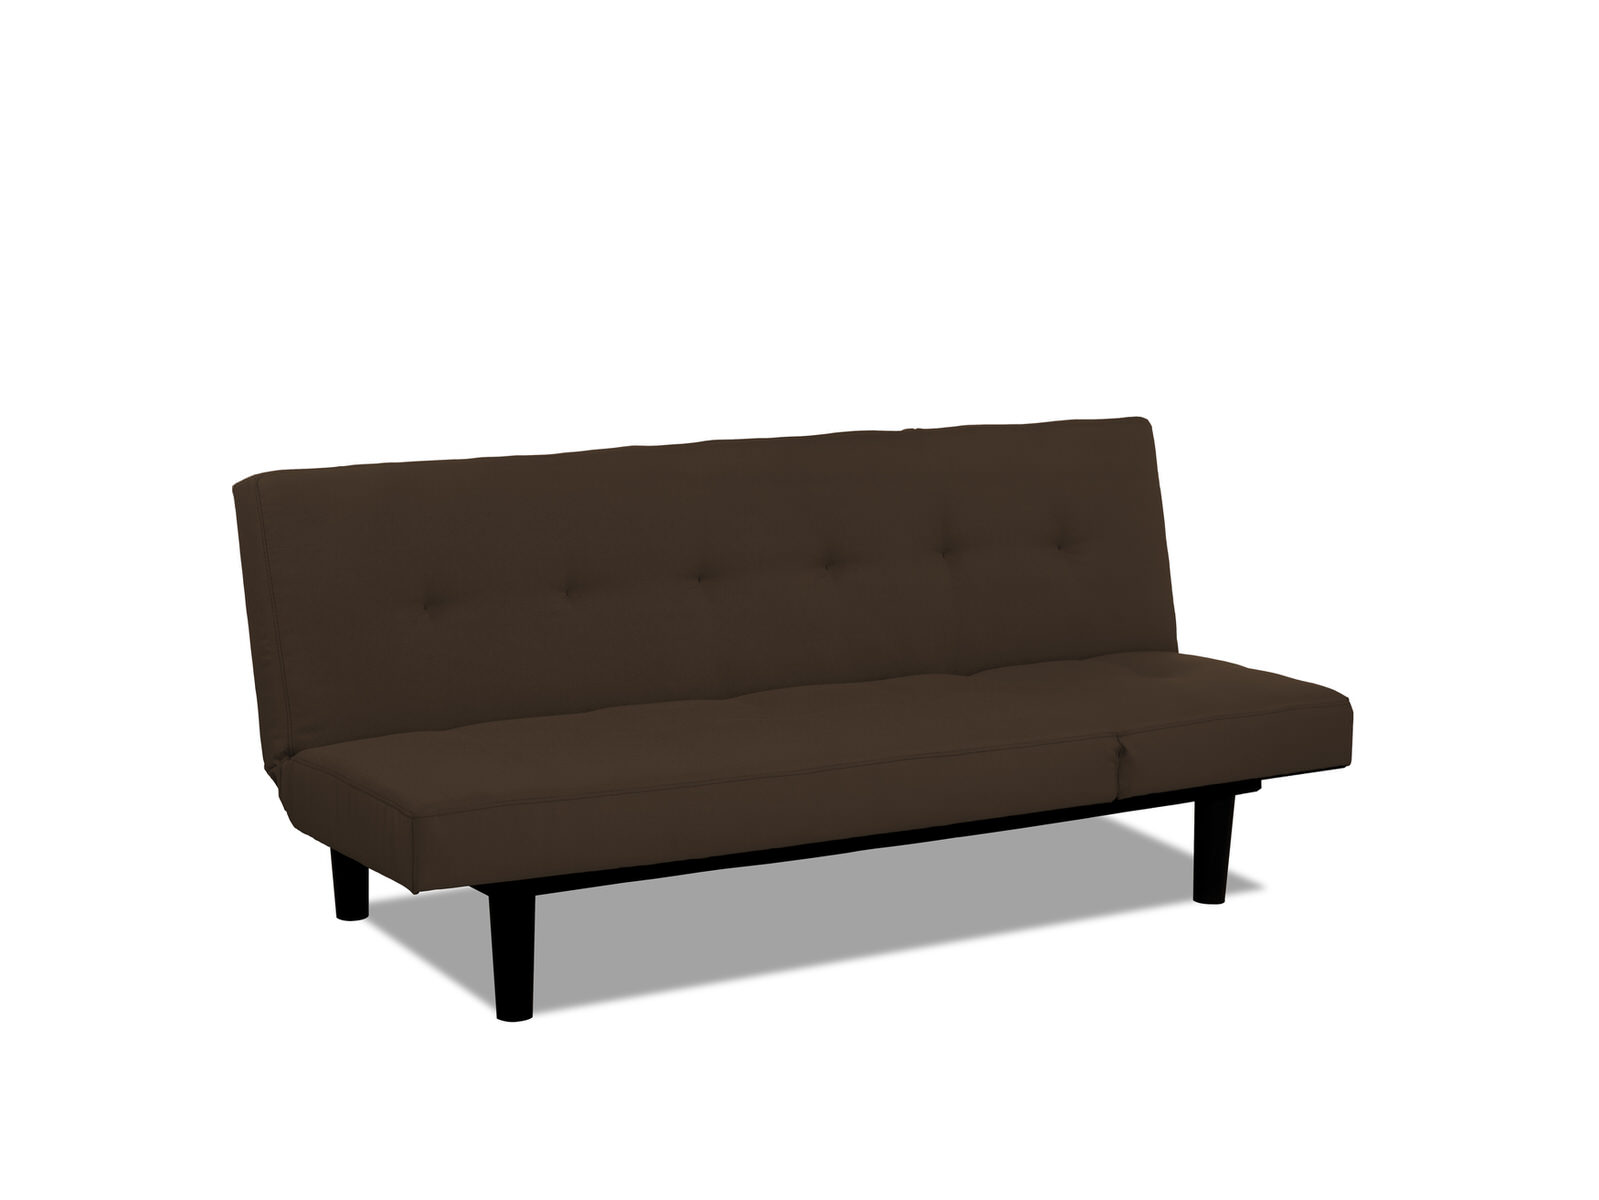 Mini Lounger Convertible Sofa Bed Brown By Serta Lifestyle